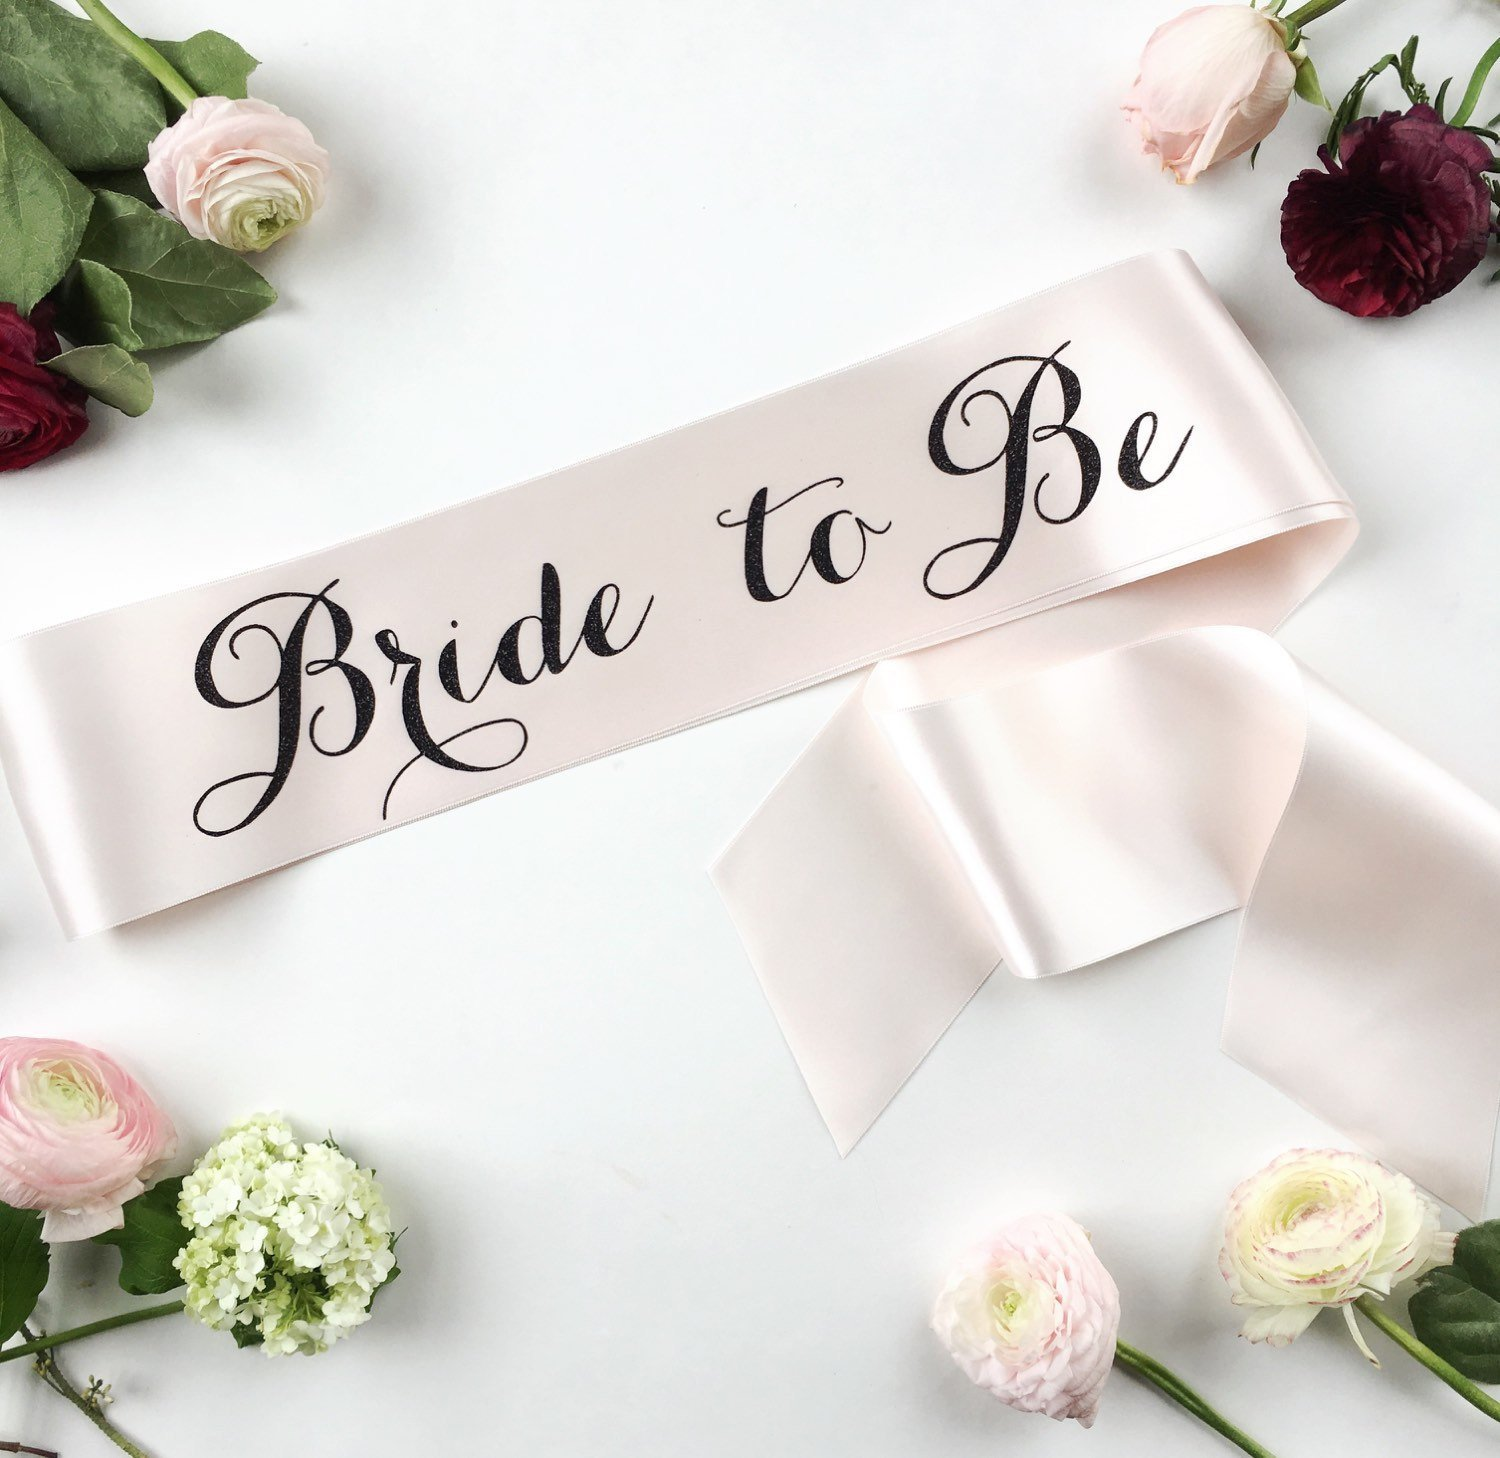 Bride to Be Sash Bridal Bachelorette Sash